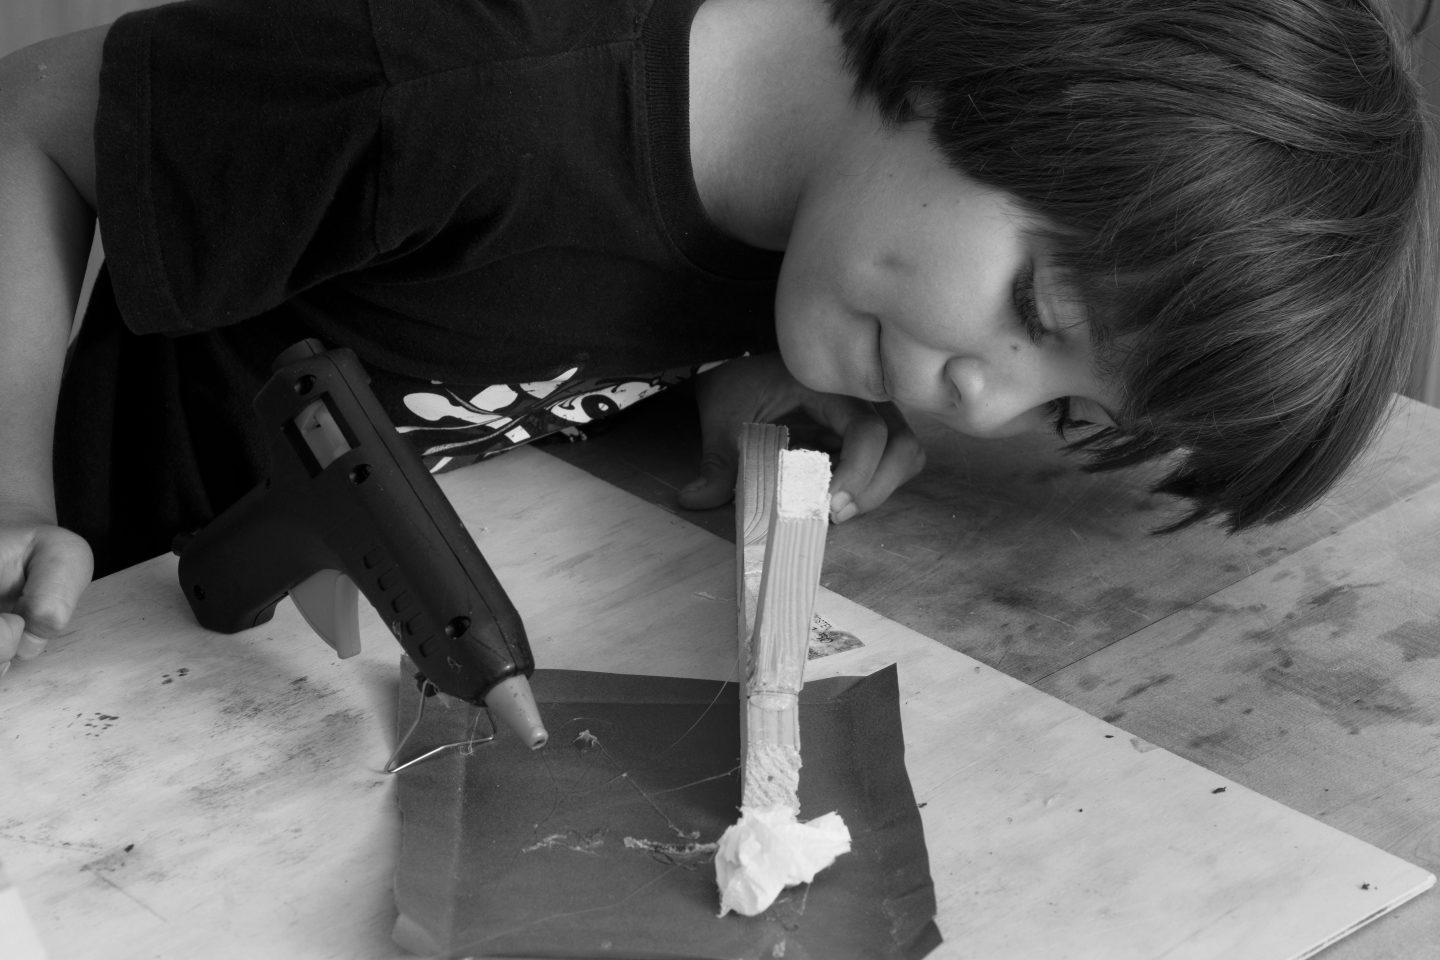 Little Boy using glue gun to stick together wood, creative work, craft, experimenting, creativity, GamePlan A